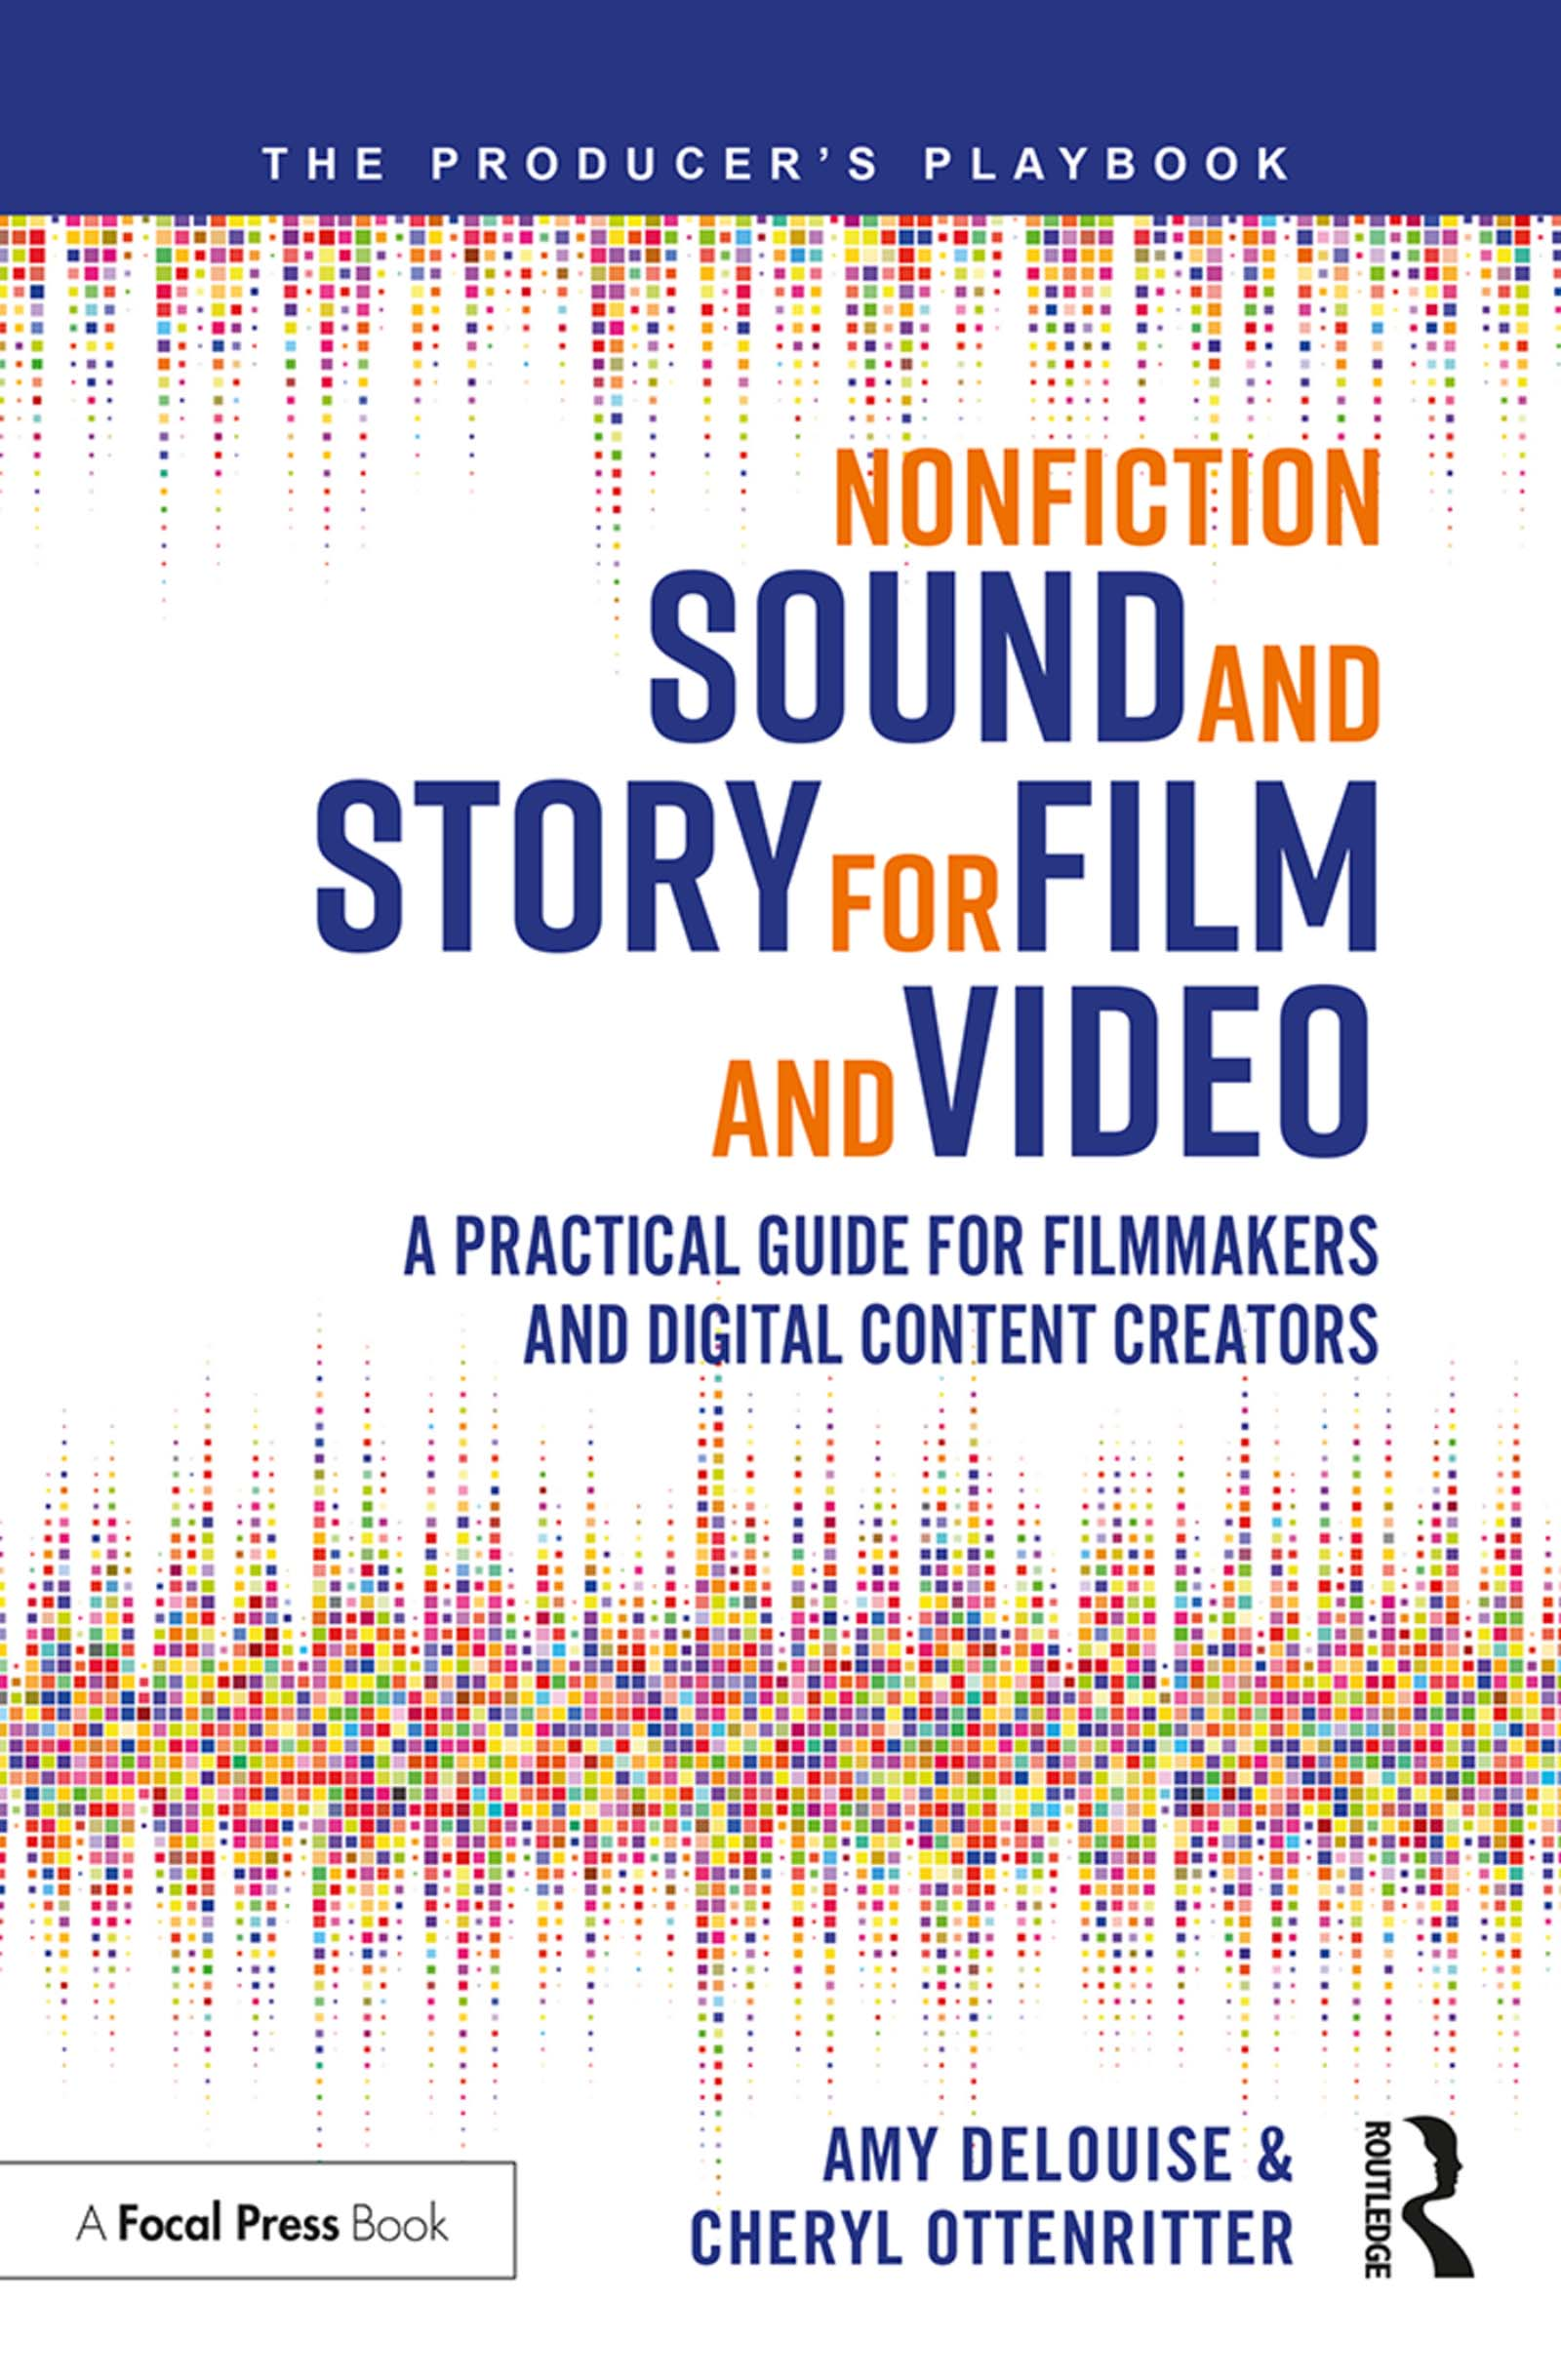 Nonfiction Sound and Story for Film and Video: A Practical Guide for Filmmakers and Digital Content Creators book cover